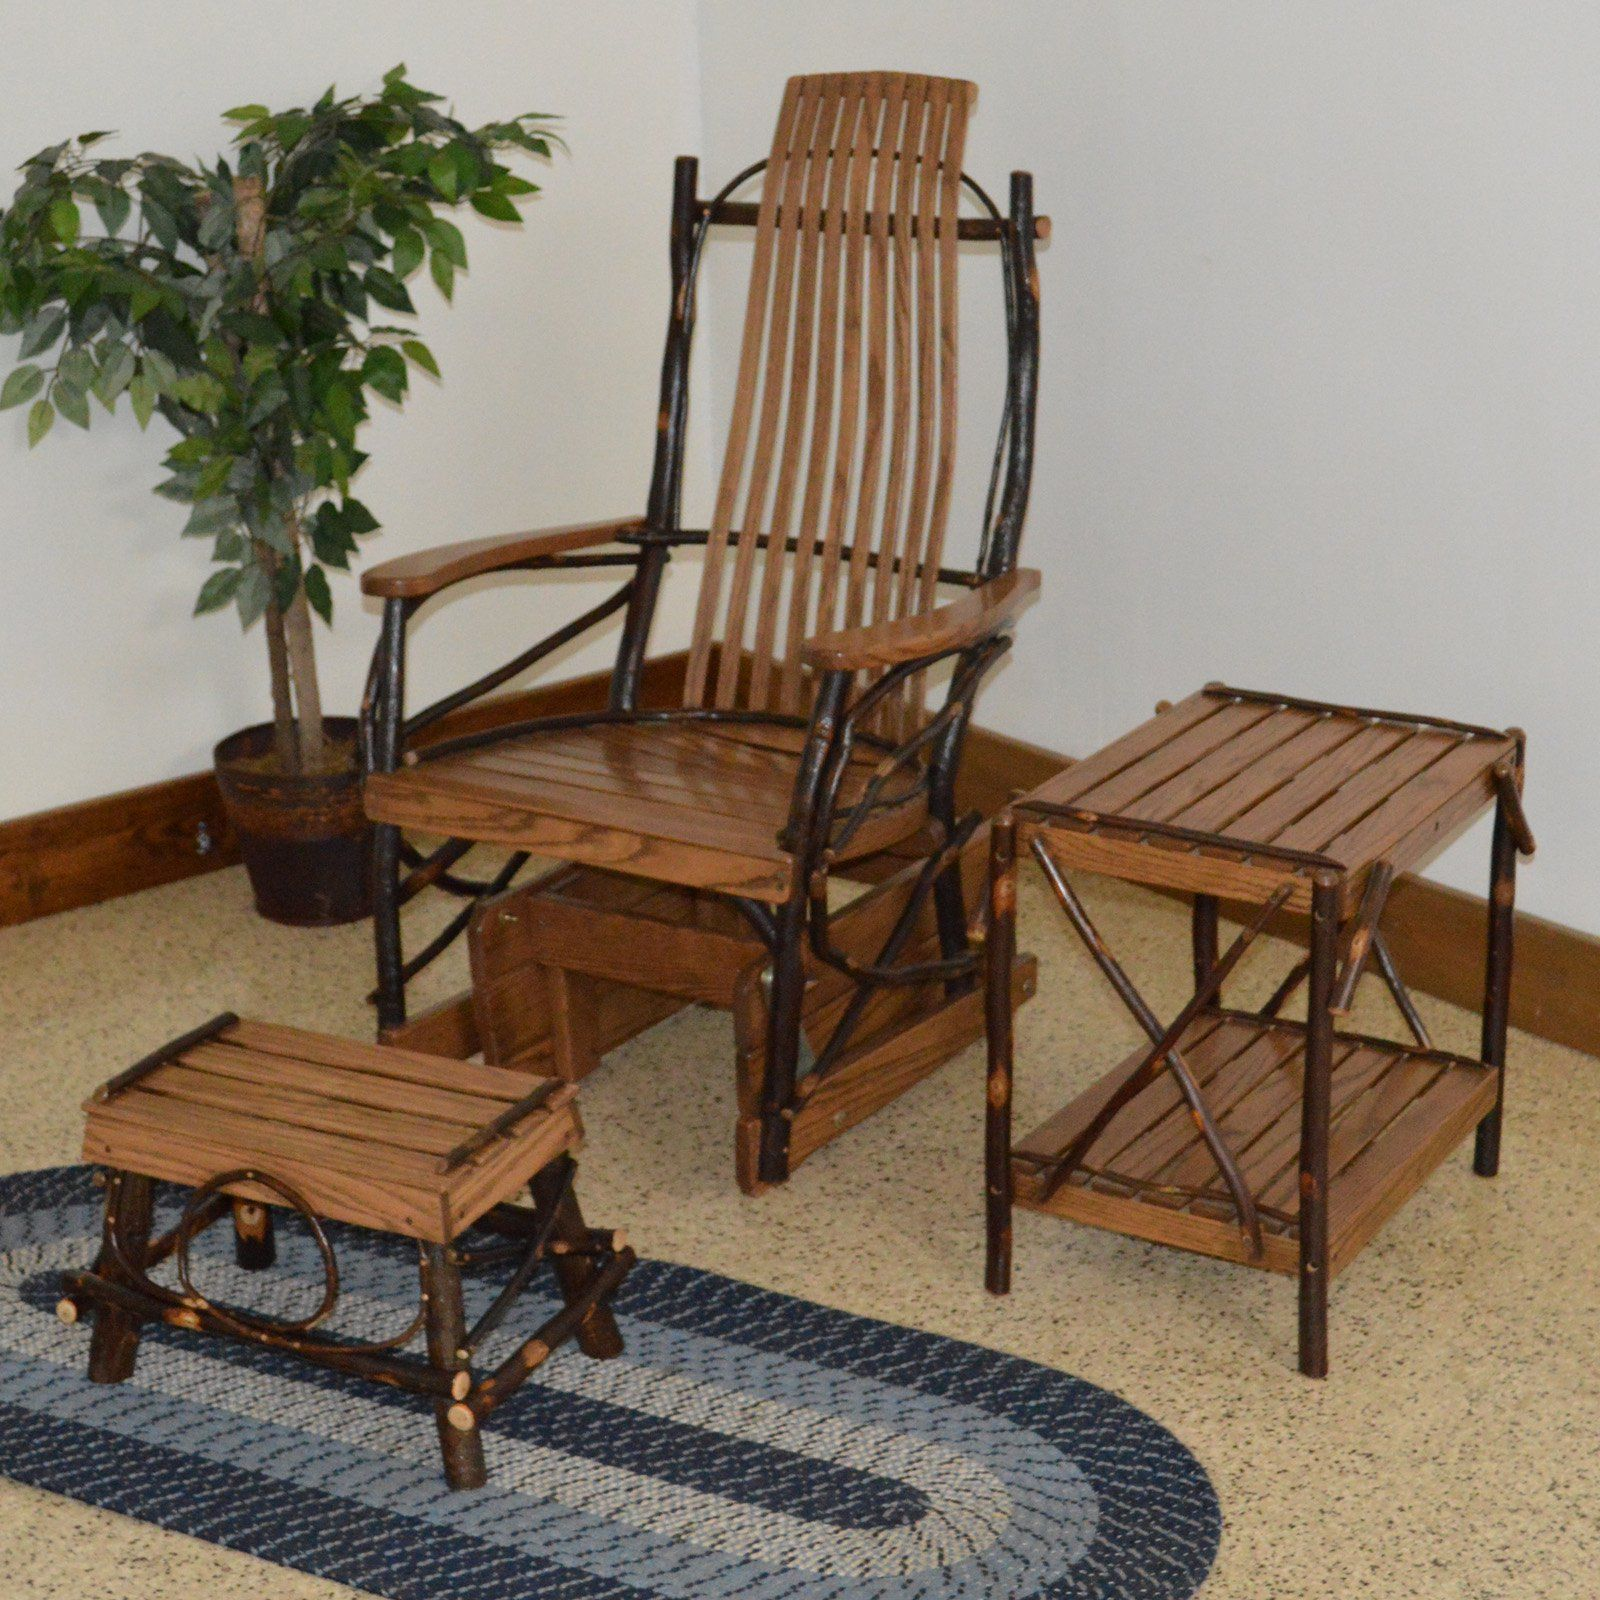 Garden Furniture Near Me For Sale: A & L Furniture Hickory 3 Piece Patio Glider And End Table